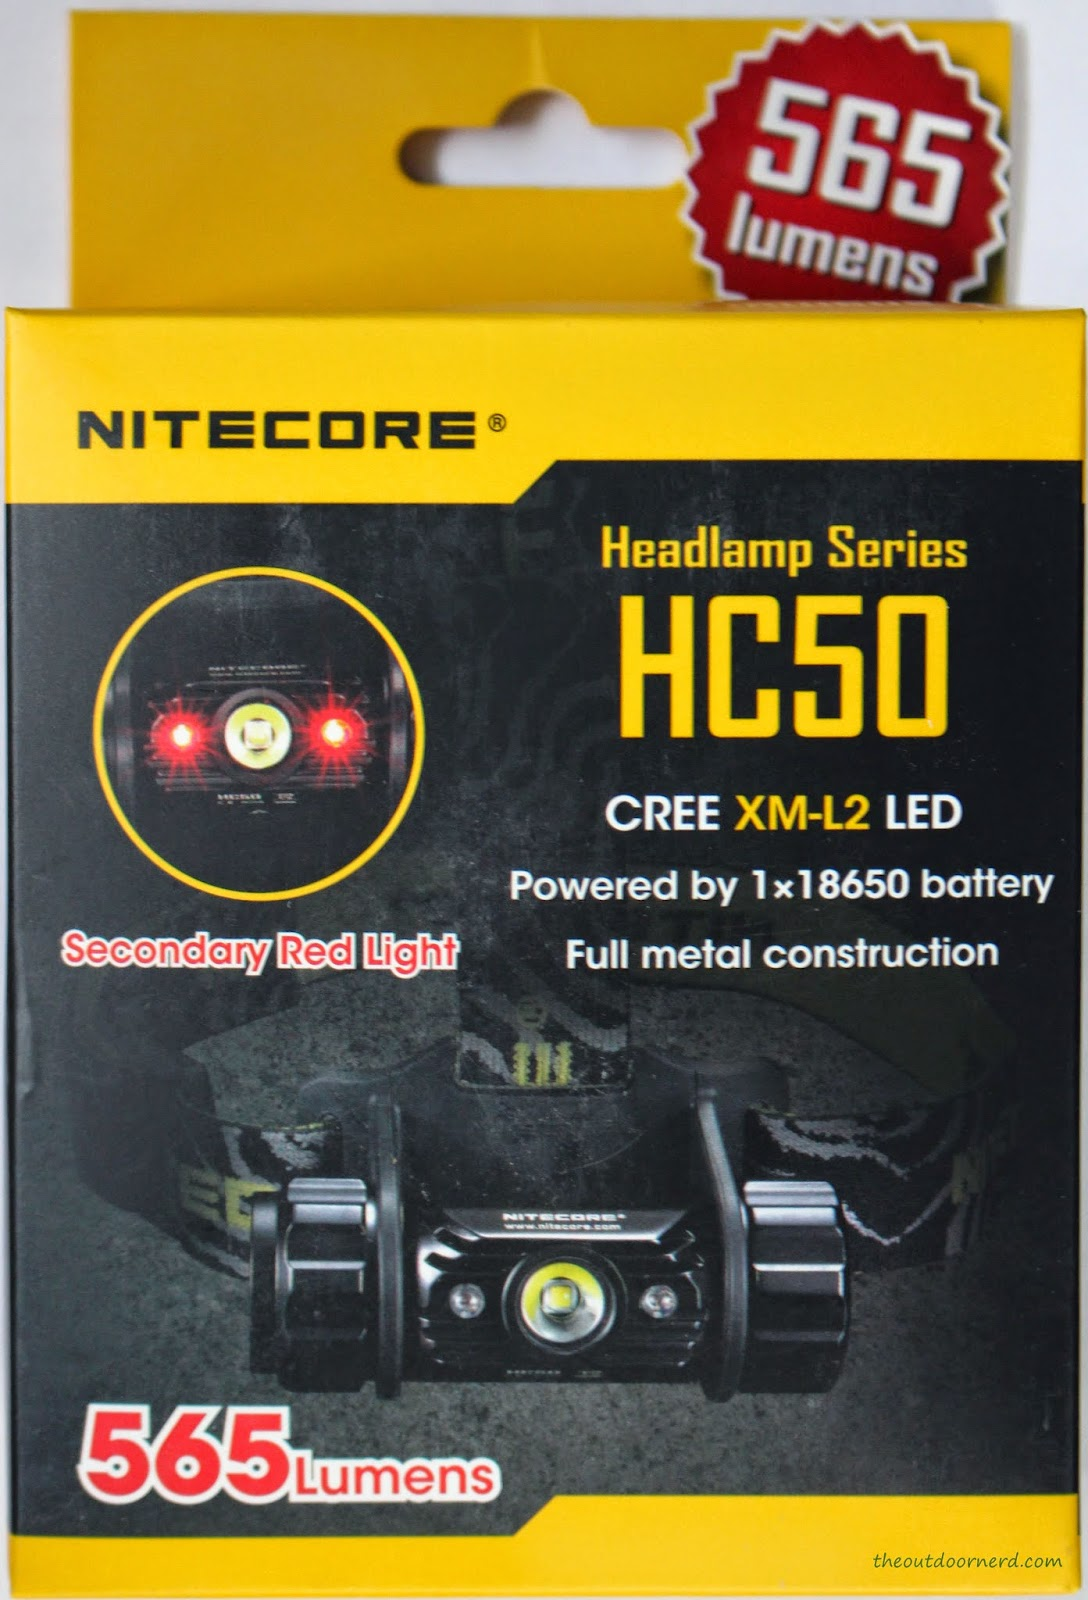 Nitecore HC50 Headlamp Box 1